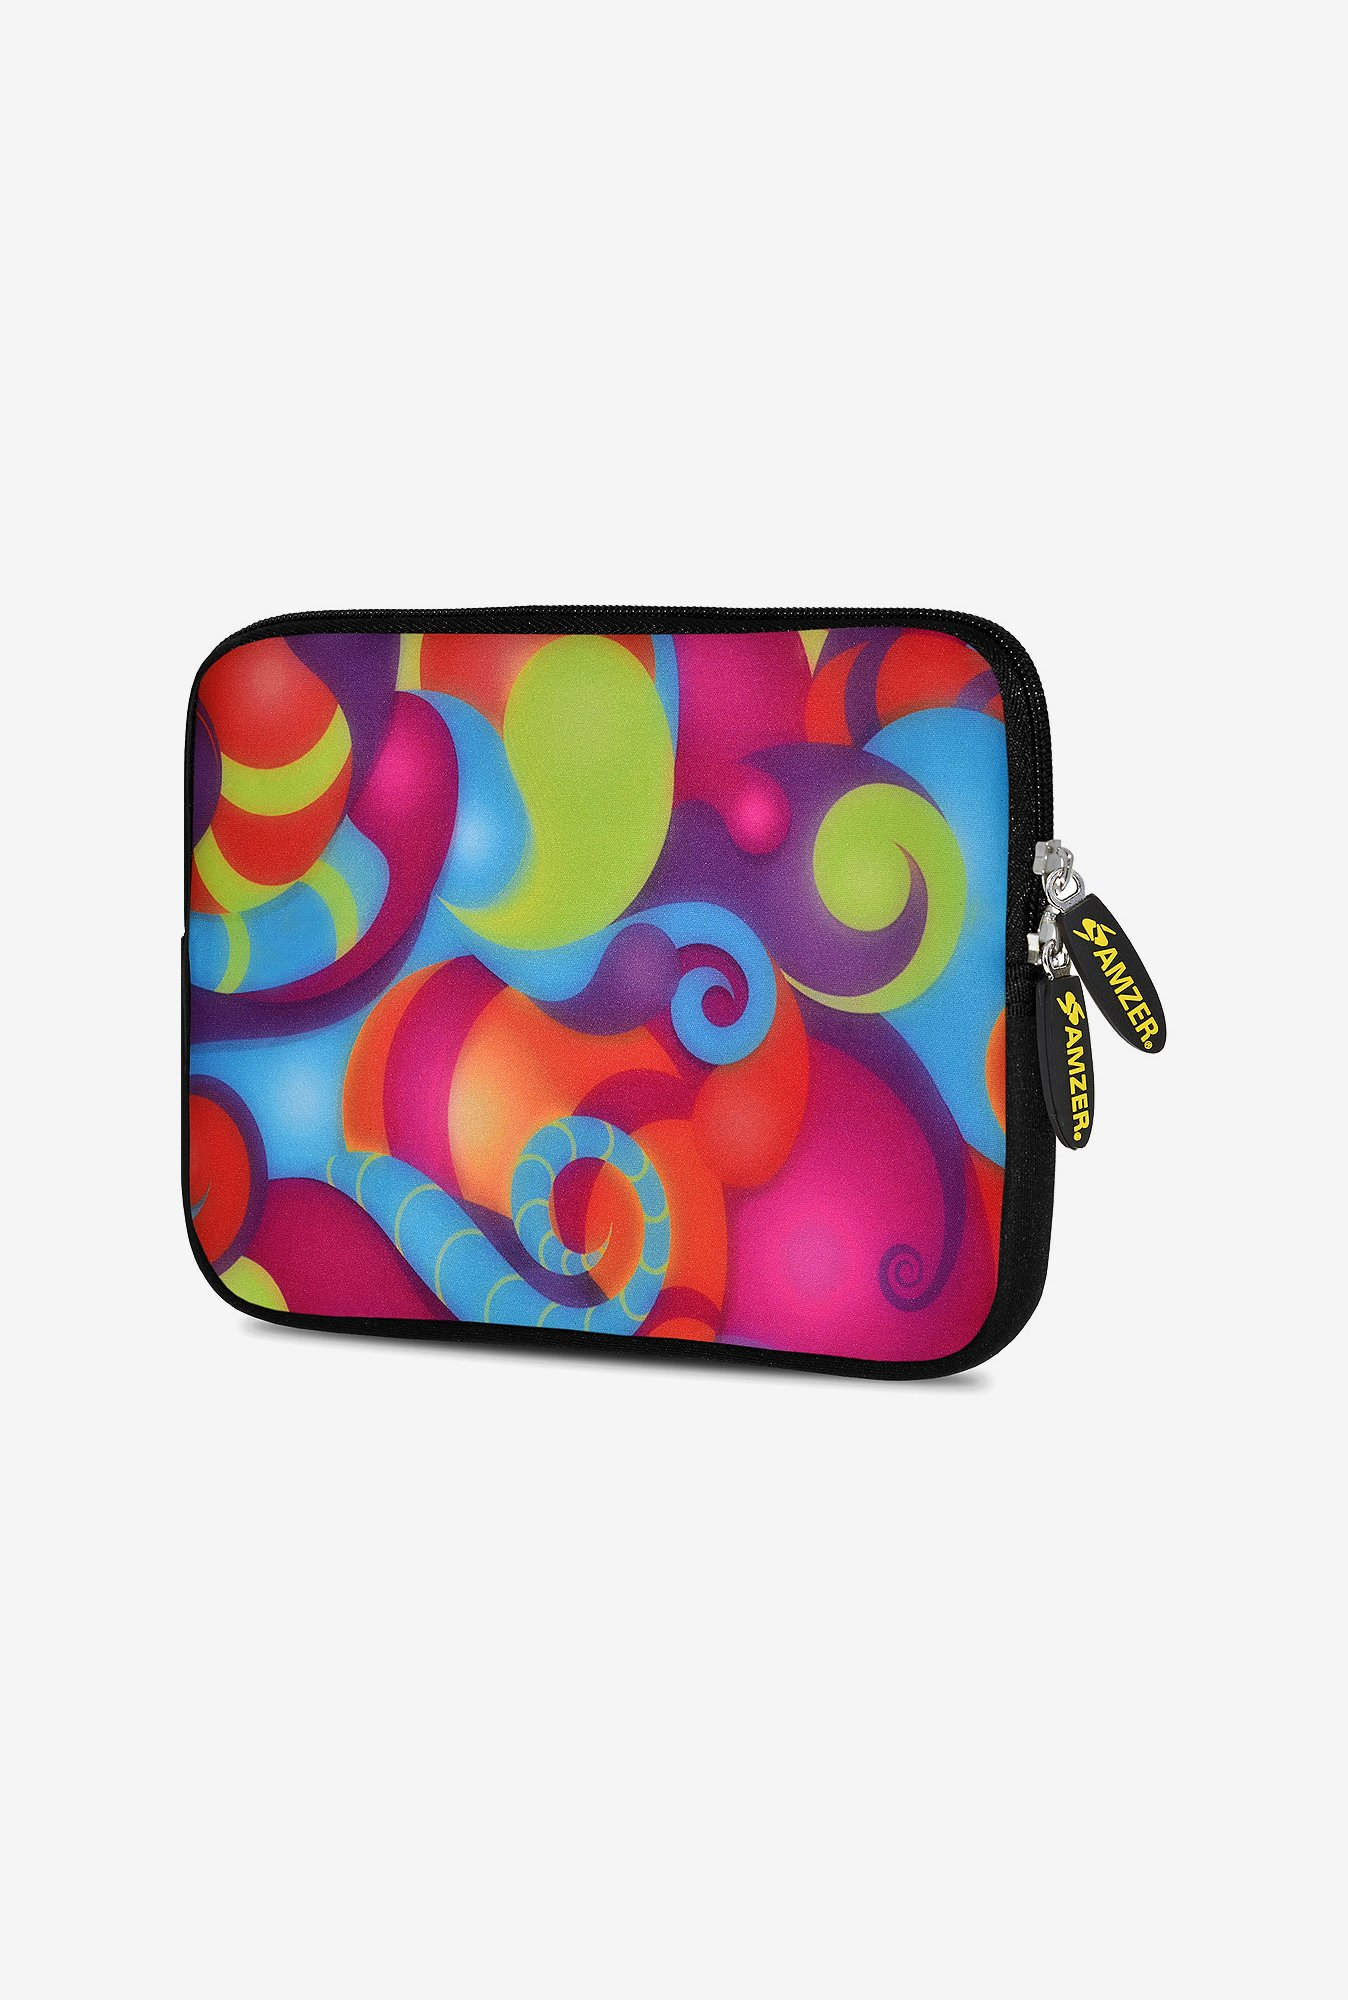 Amzer 7.75 Inch Neoprene Sleeve - Dancing Colours